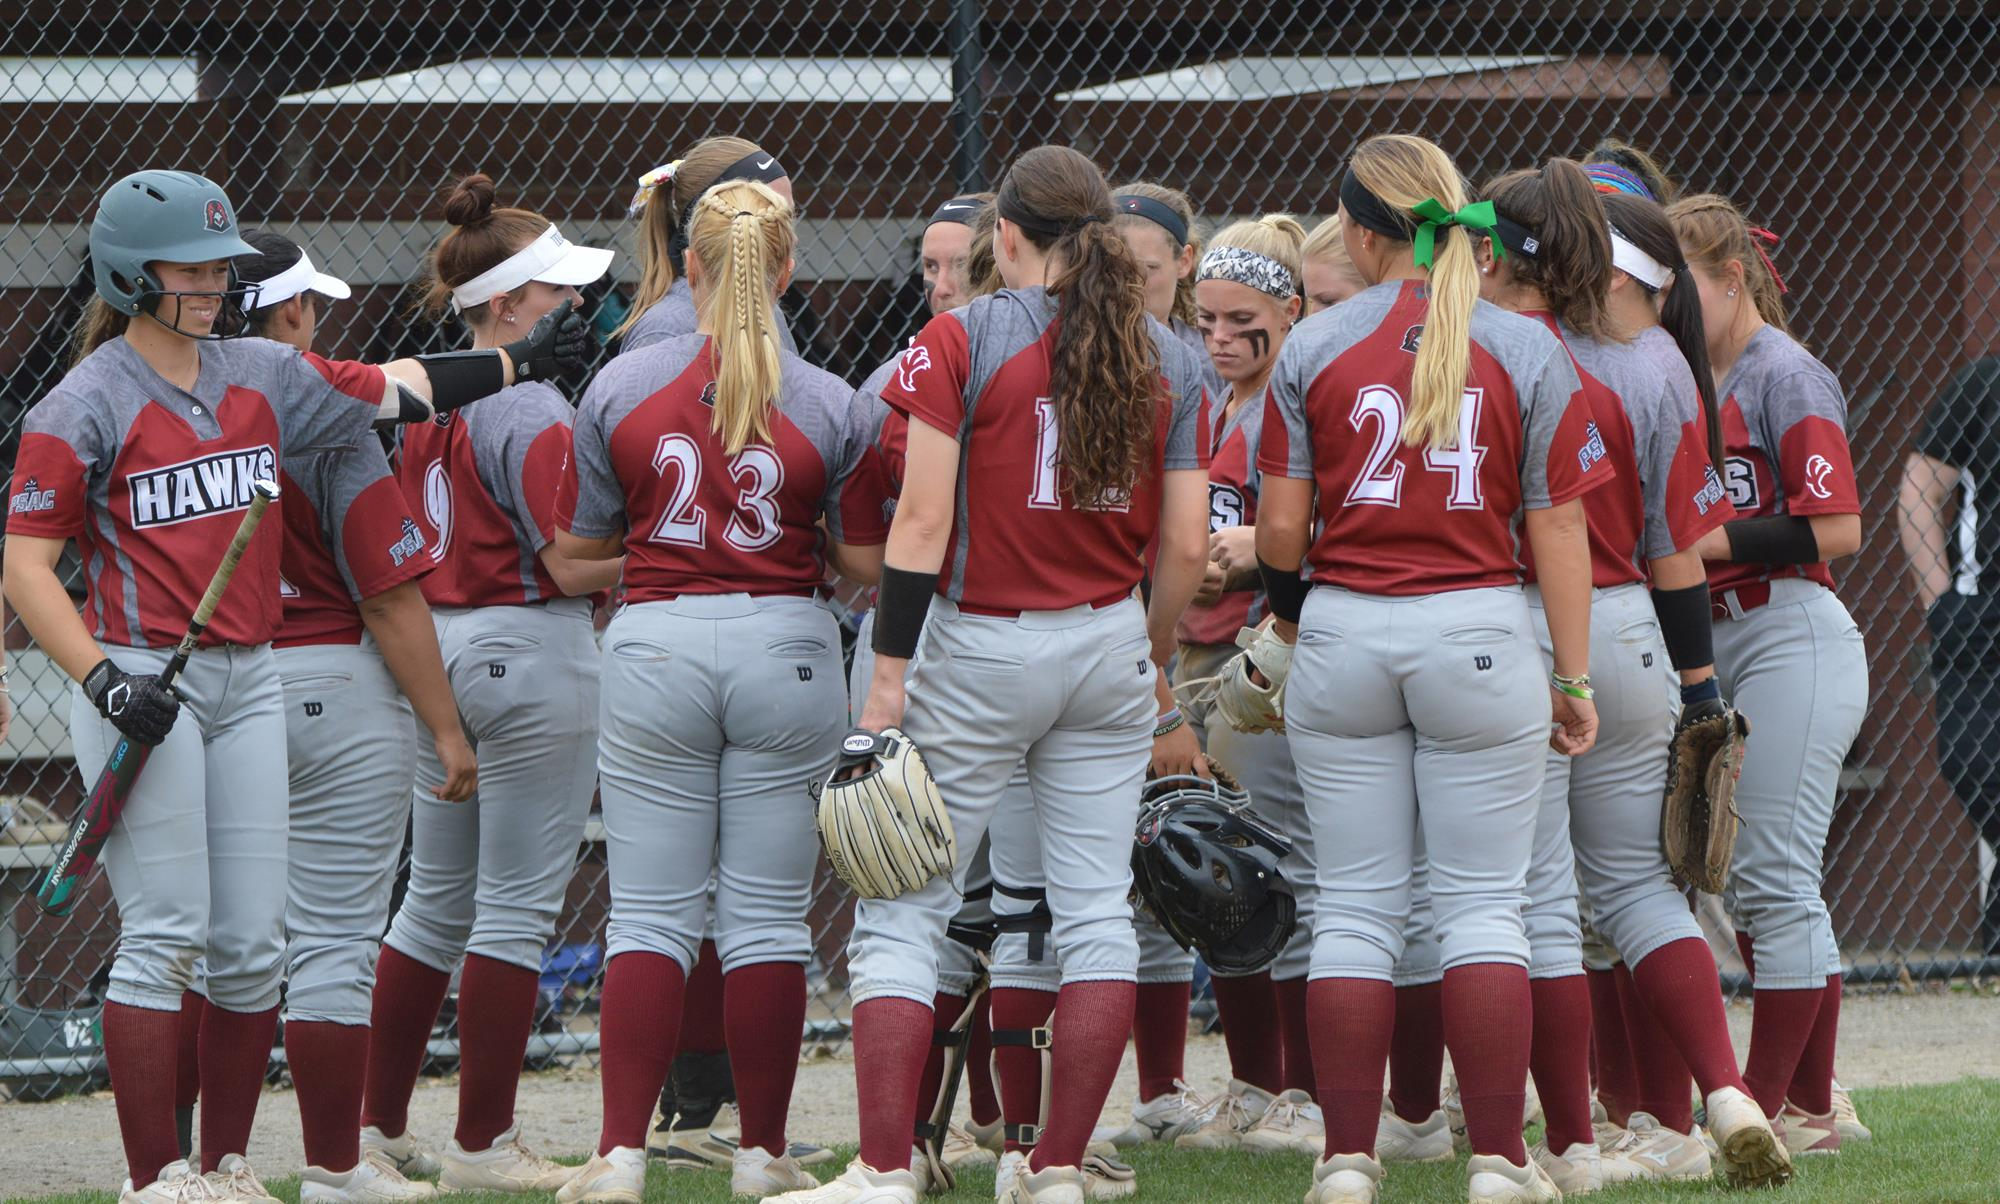 IUP Softball announces fall tryout for 2020 season - Indiana